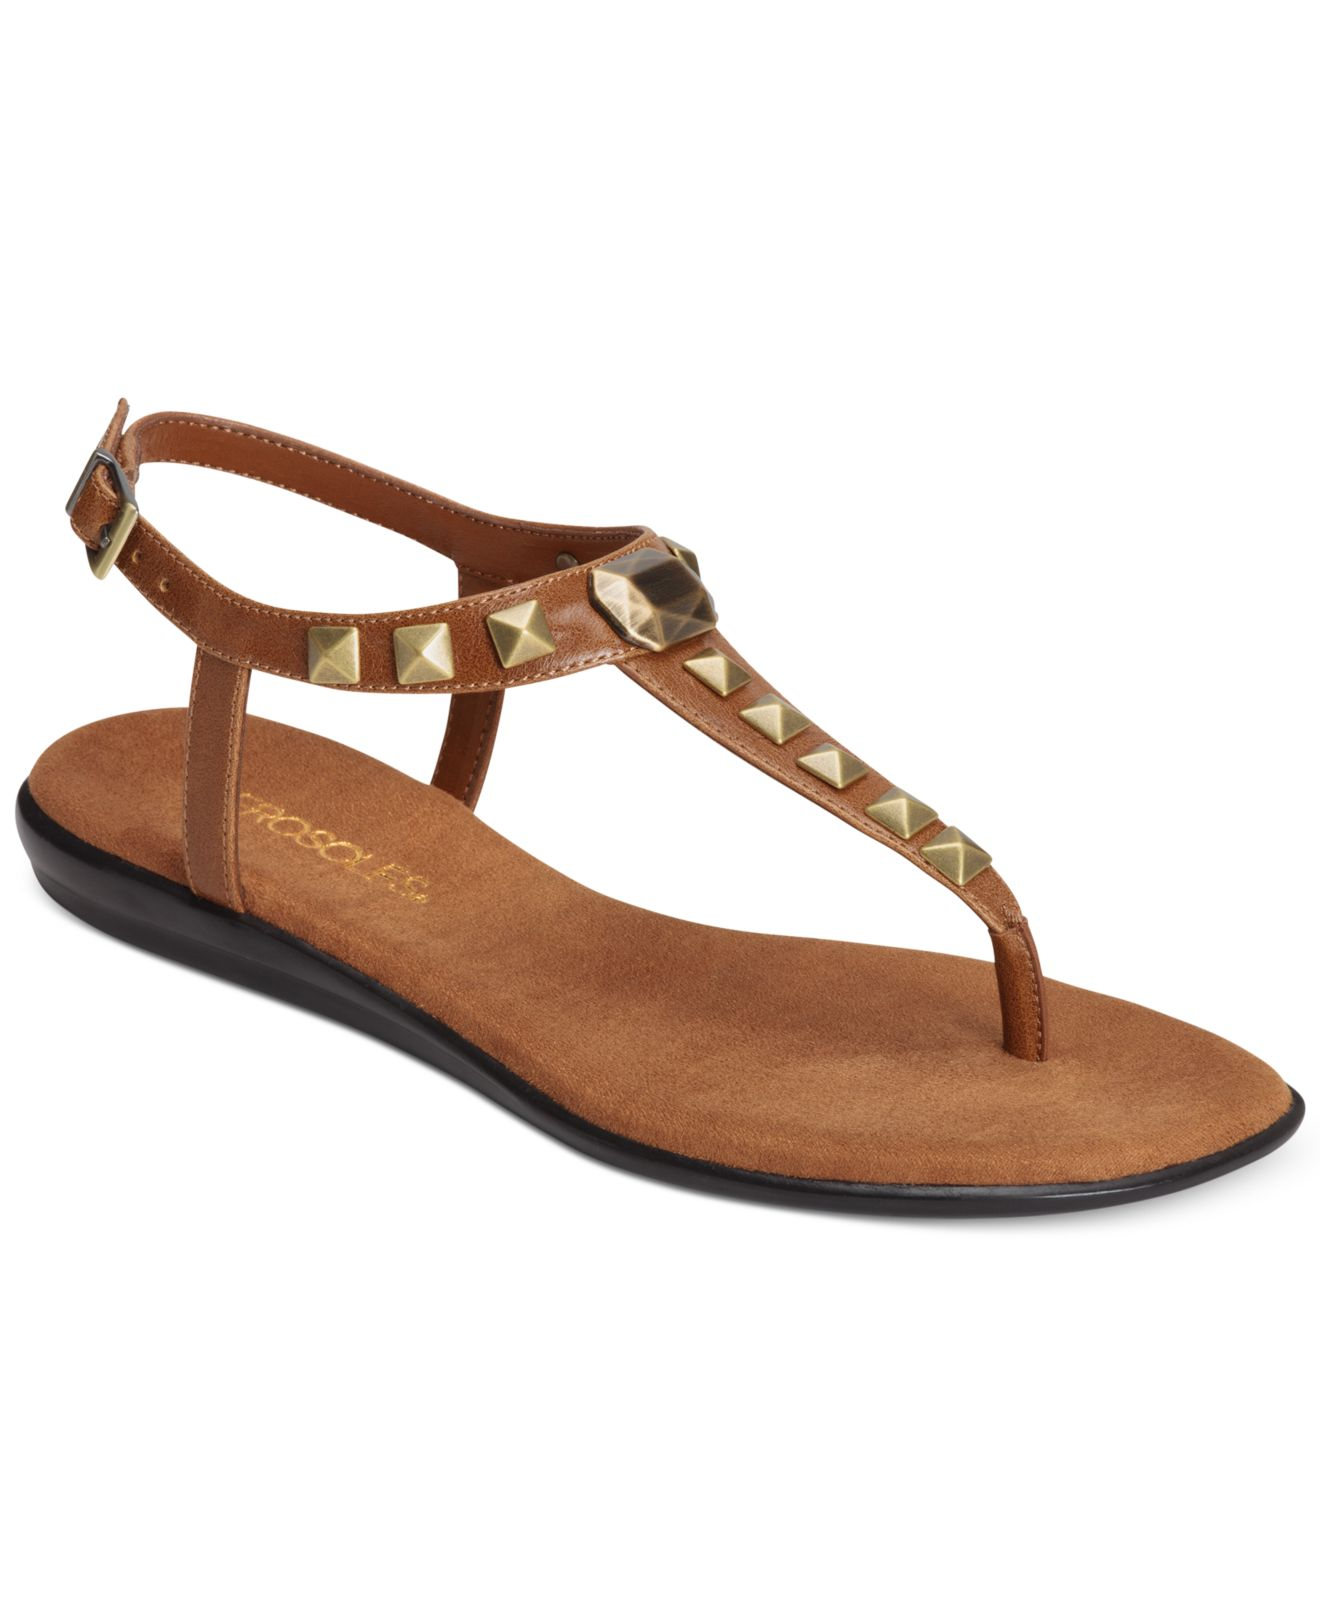 Womens Tan Flat Shoes